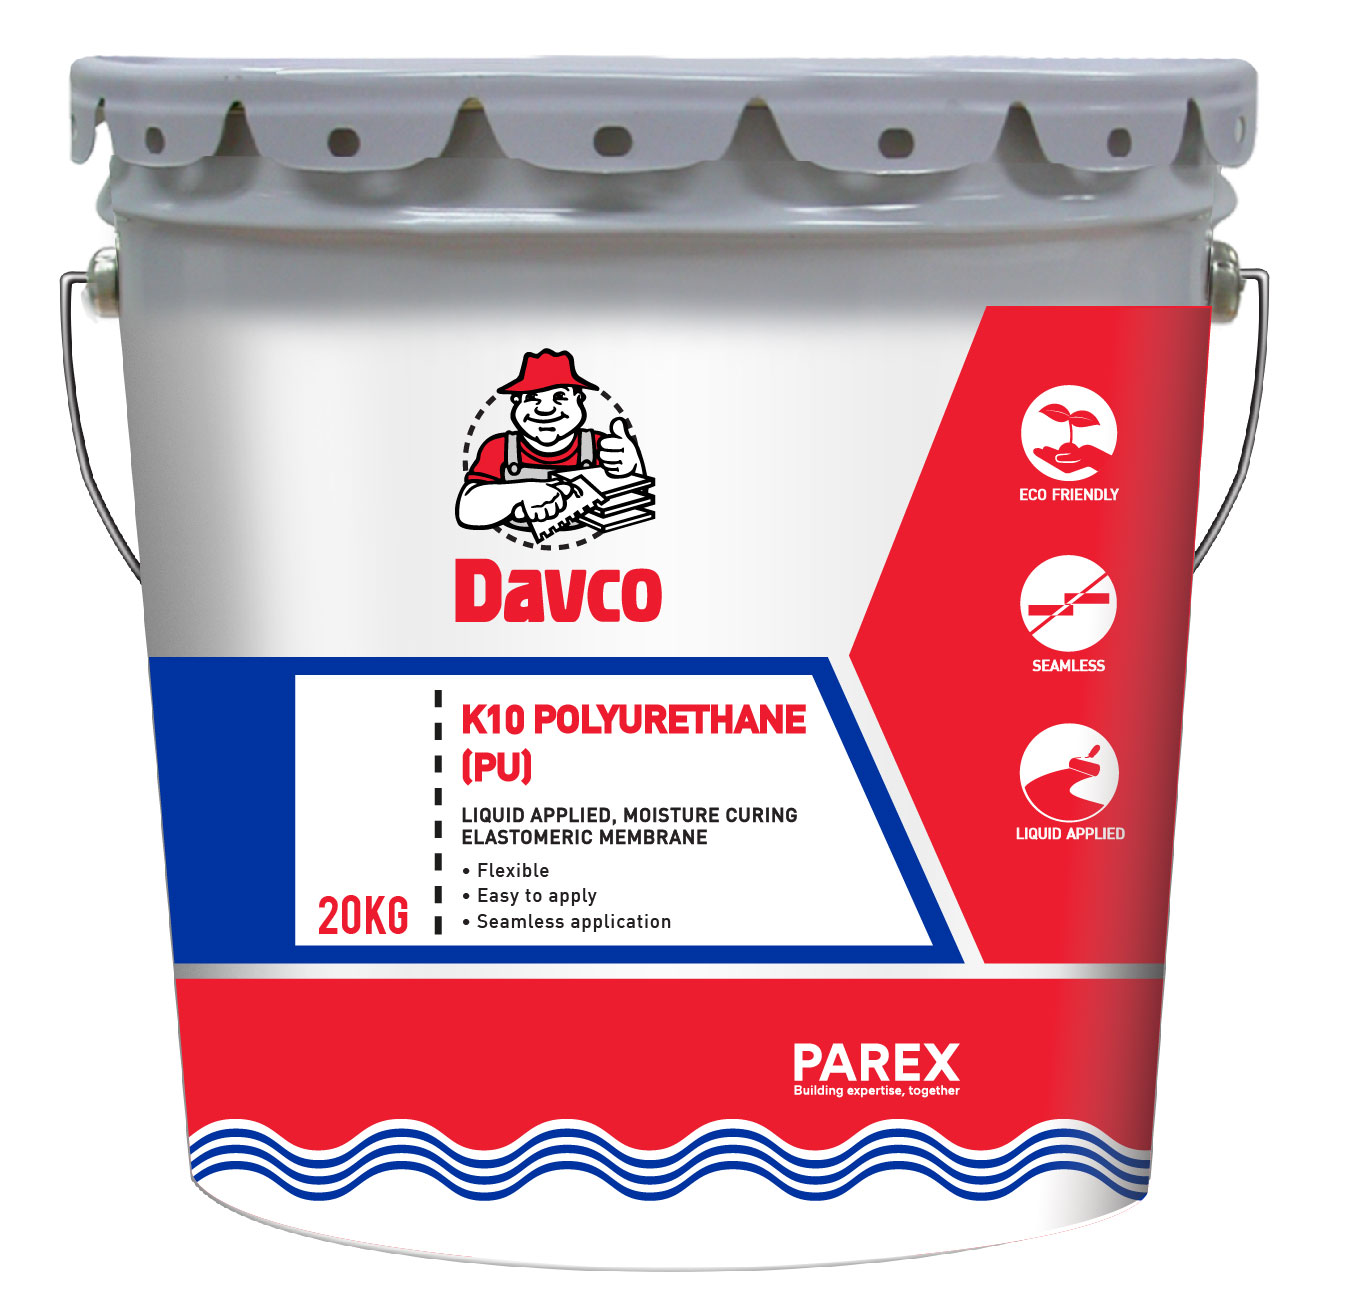 Davco K10 Polyurethane (PU) Technical Specification